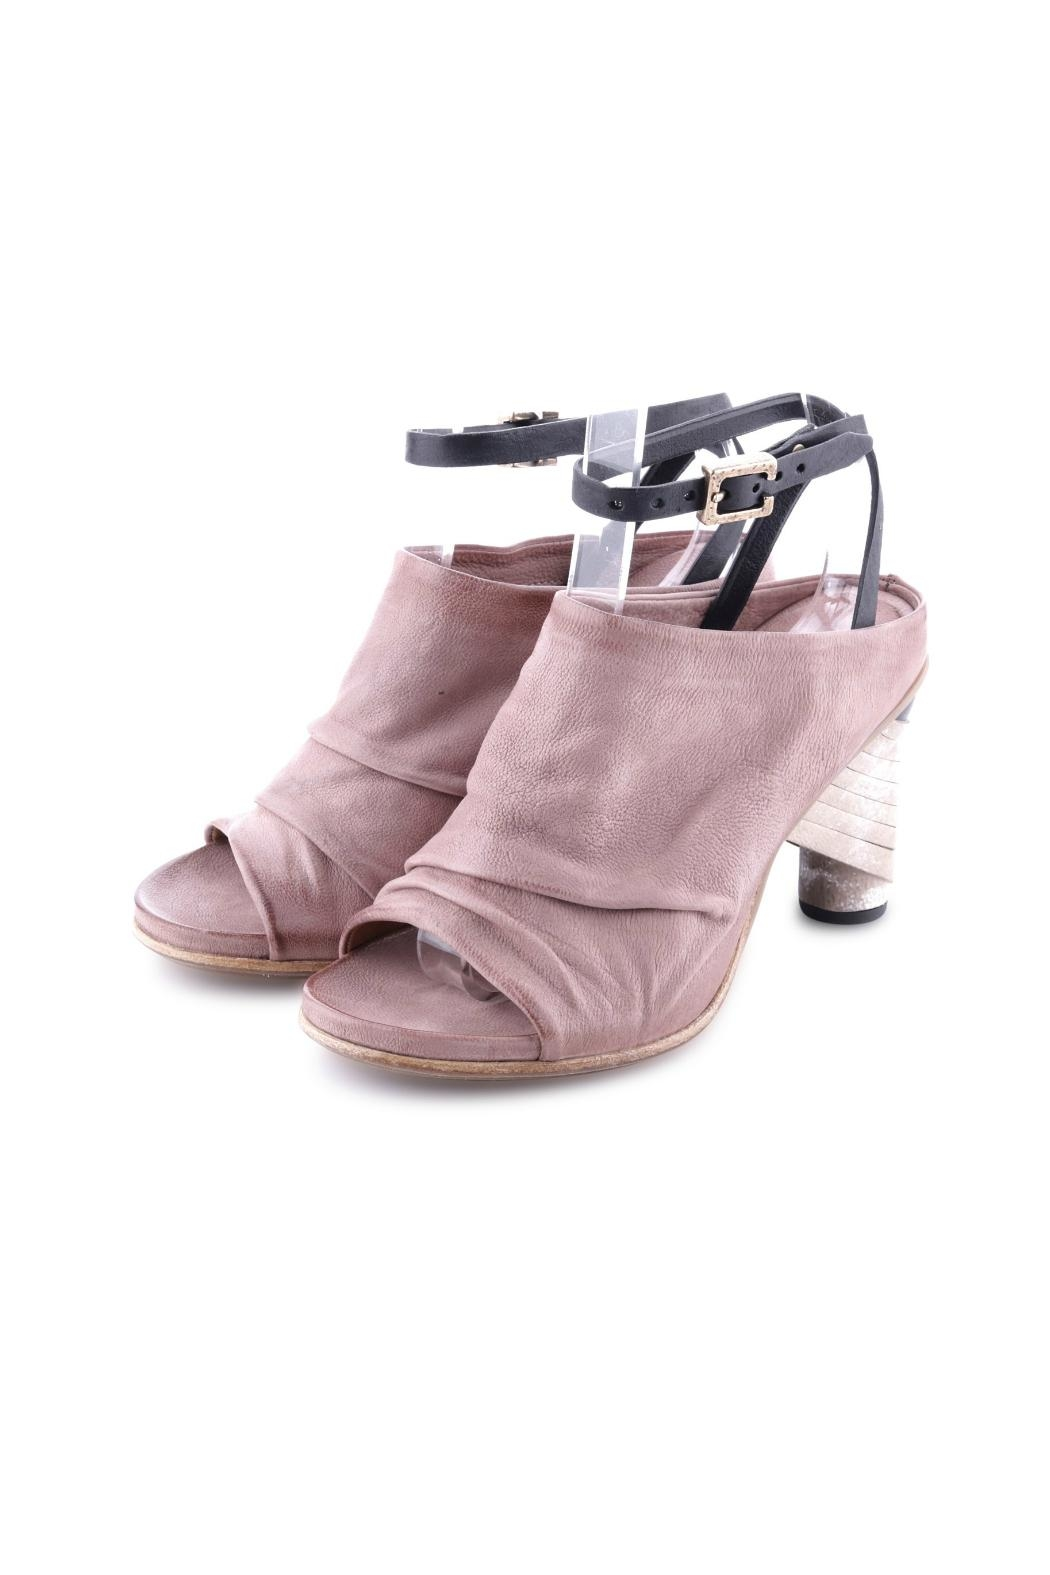 A S 98 Beautiful Heels From Canada By Labelle Shoptiques